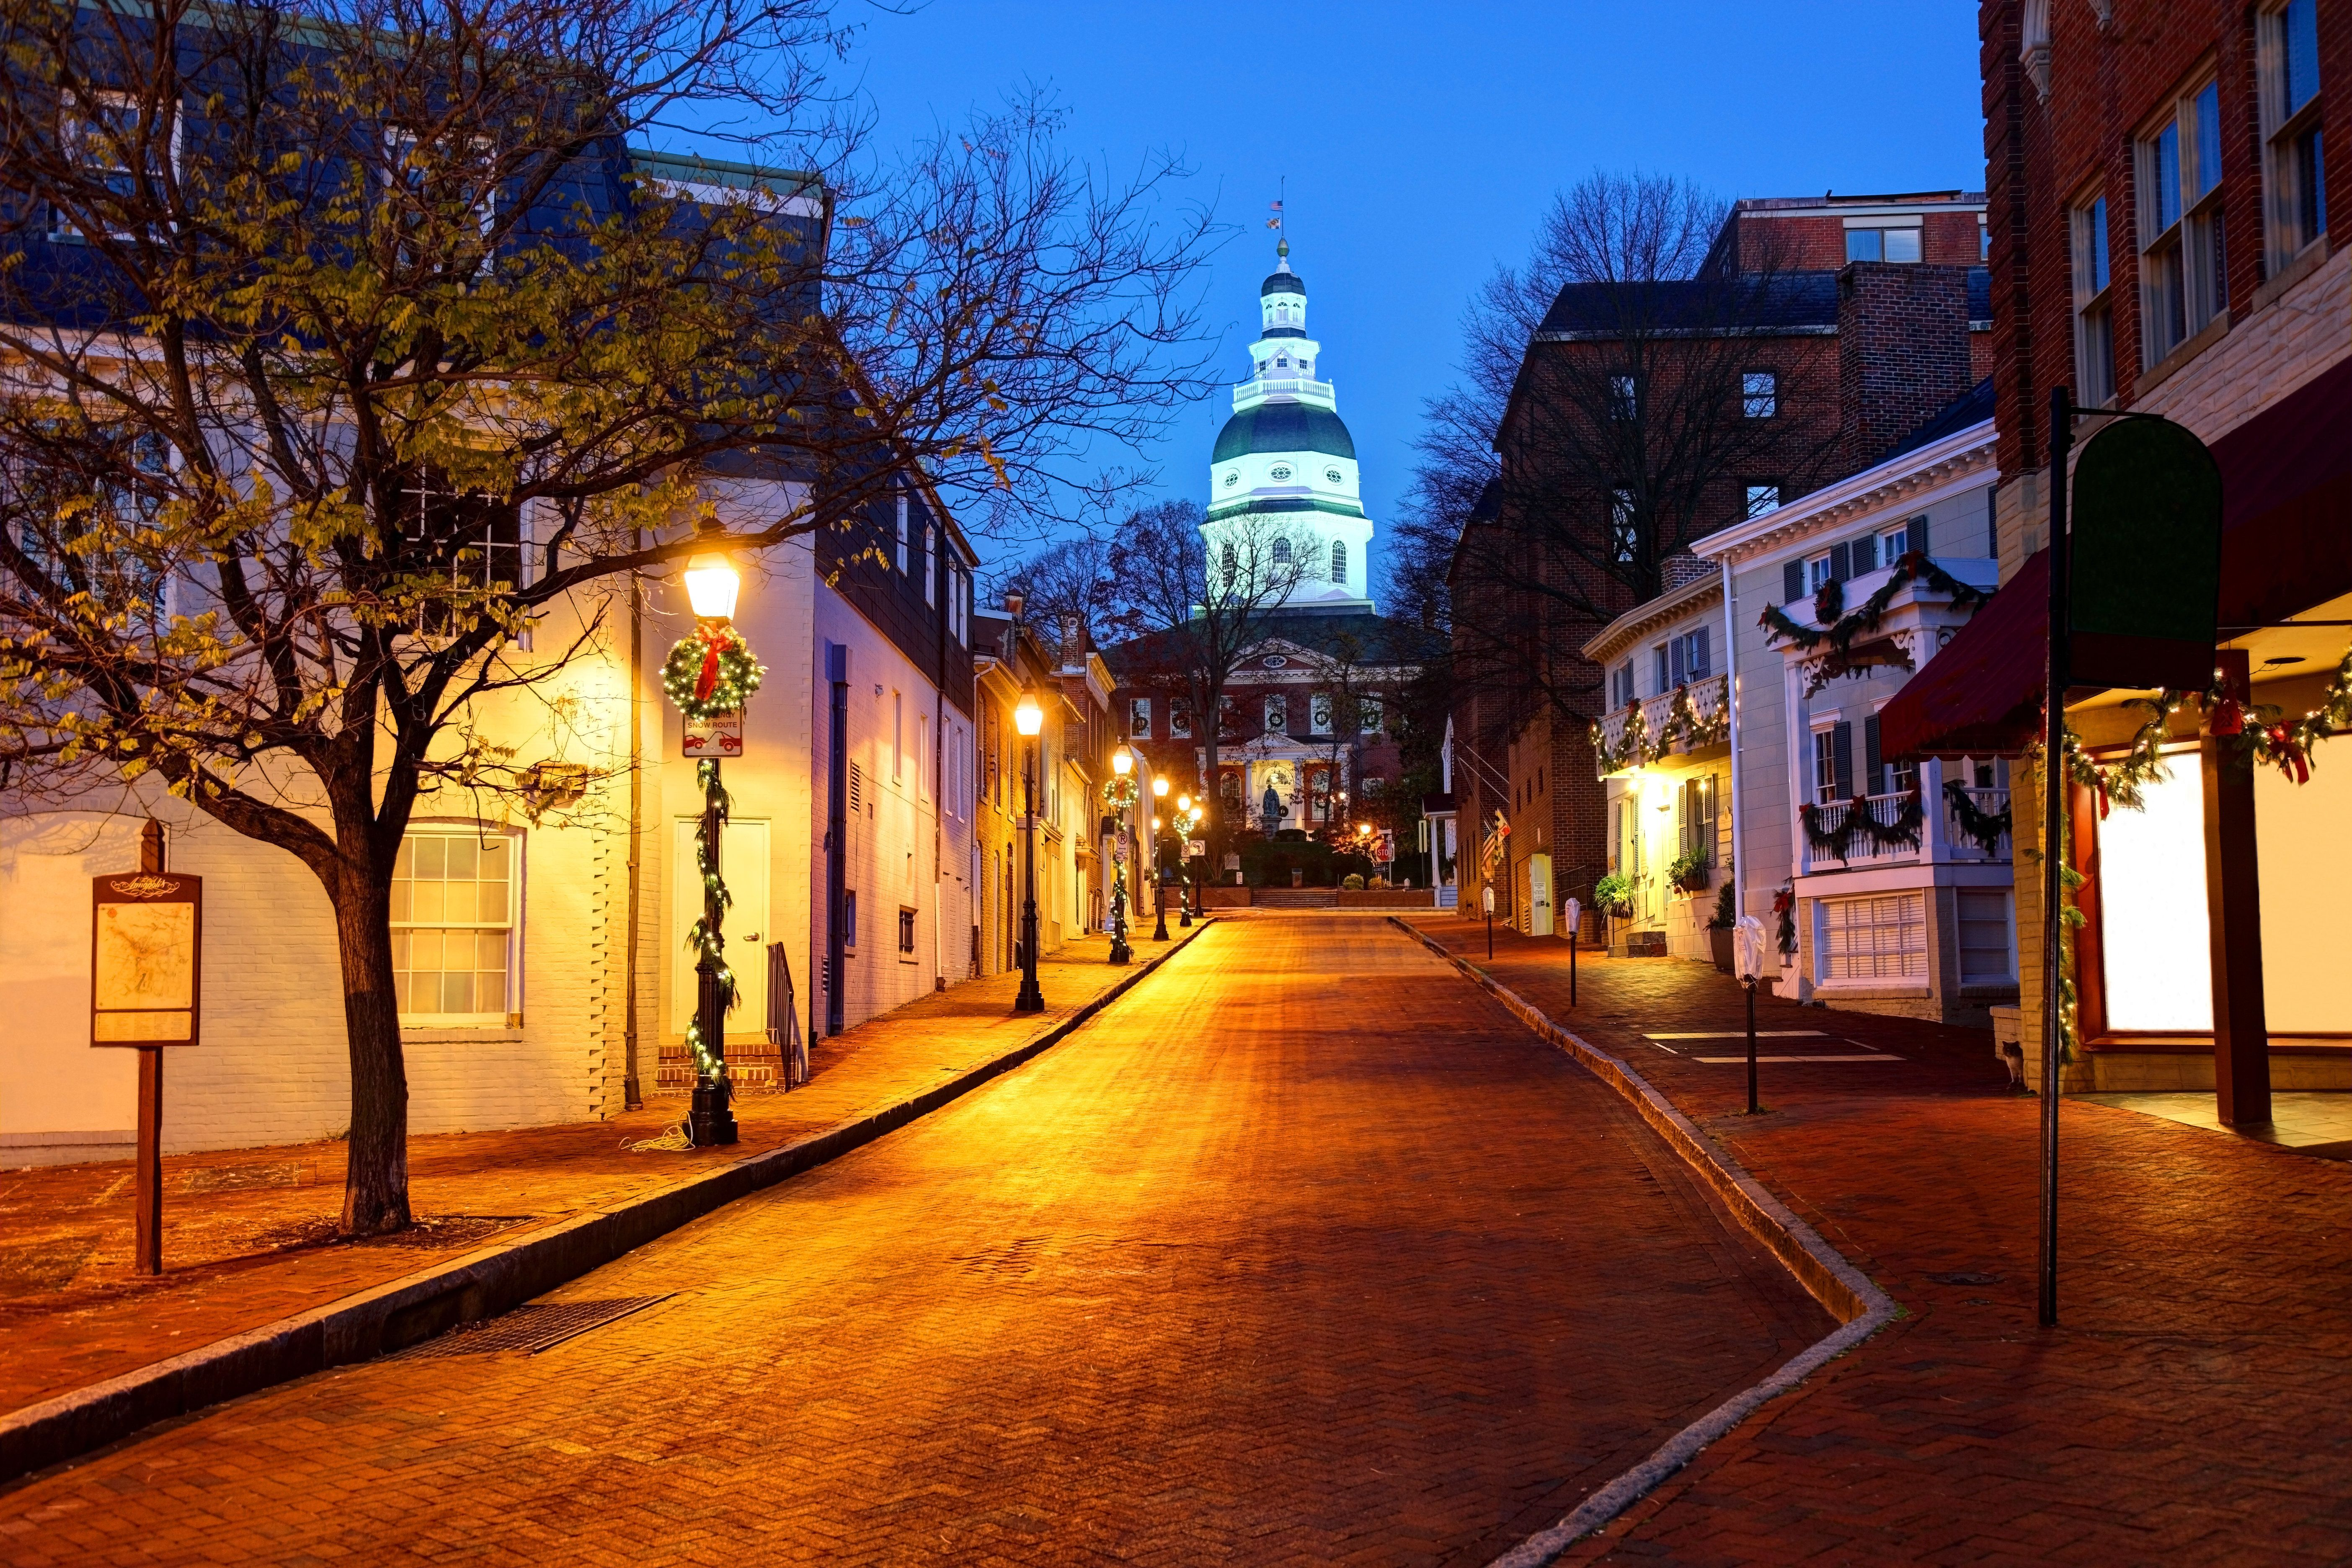 The Maryland State House is located in Annapolis and is the oldest state capitol in continuous legislative use, dating to 1772.